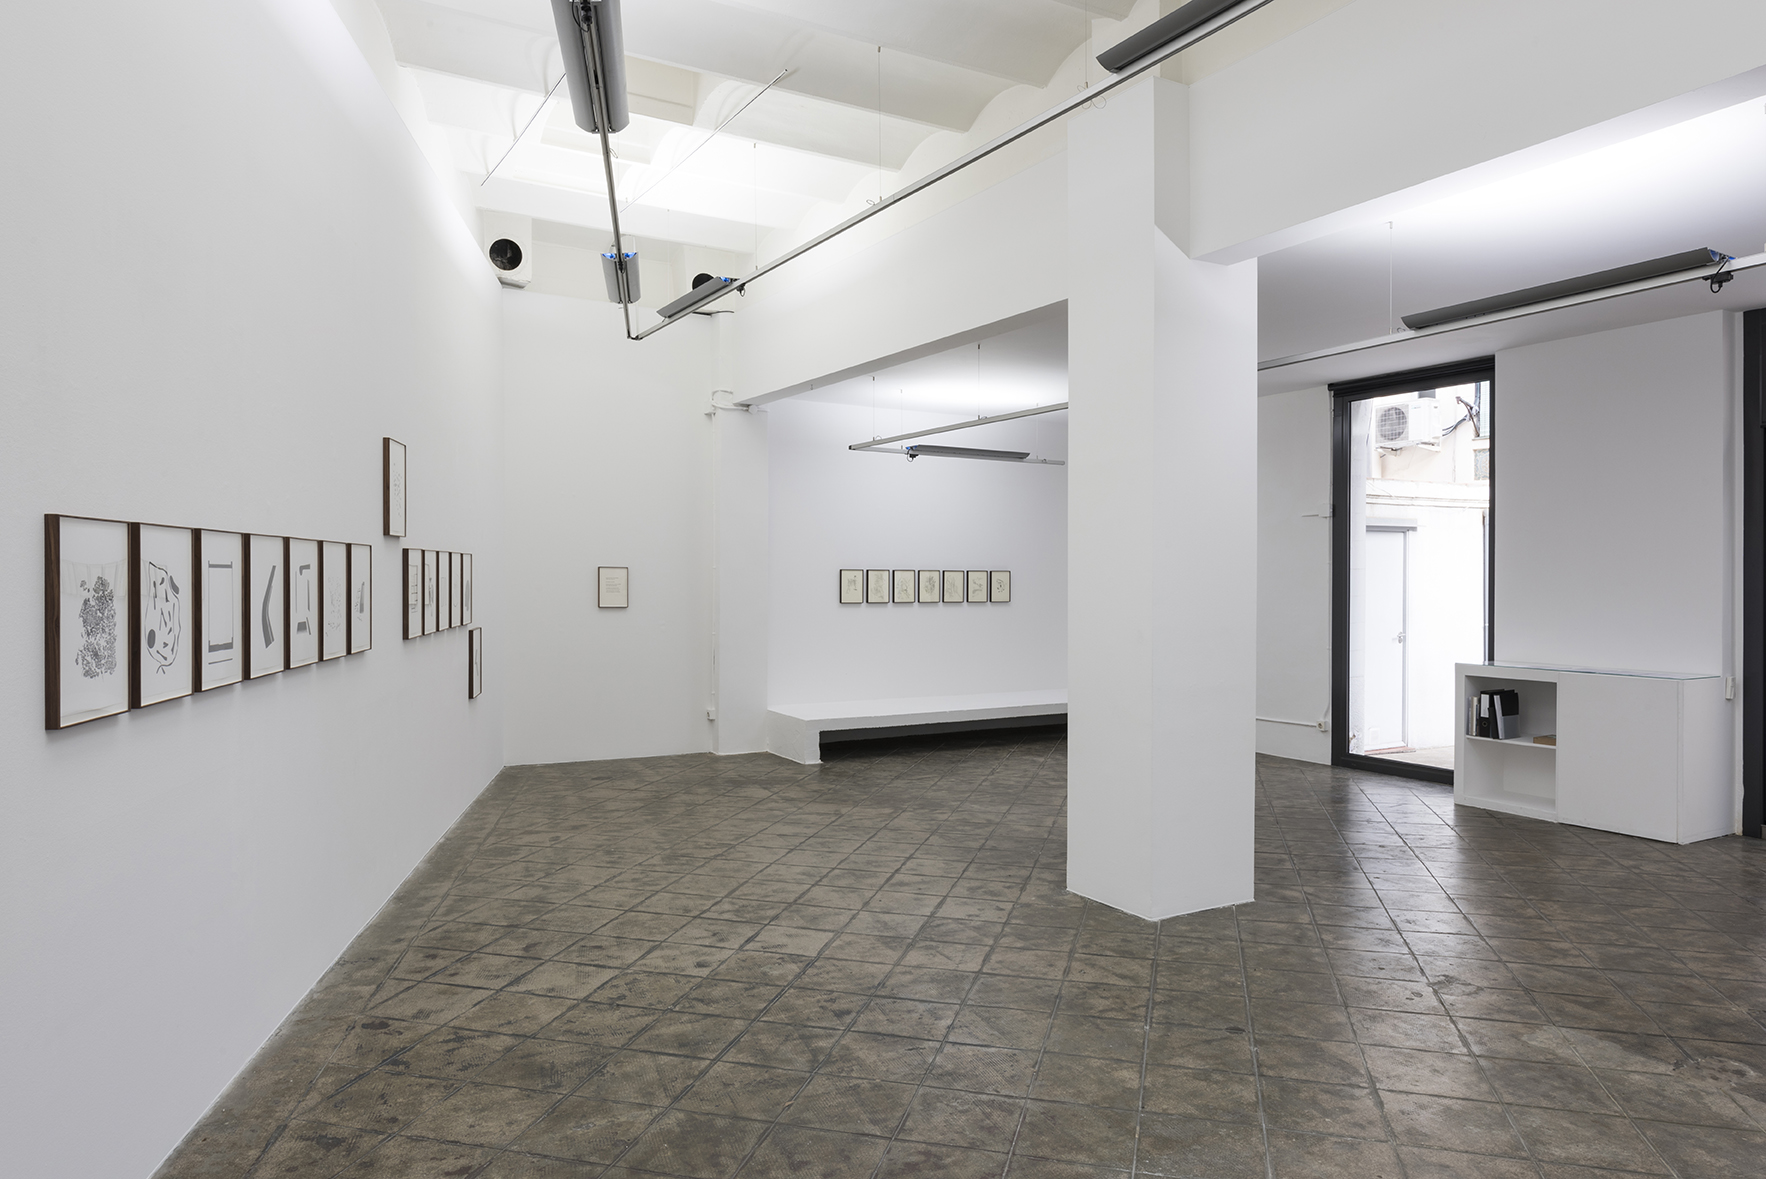 Installation view: La Vida Abstracta de Billy Murcia, ProjecteSD | La Vida Abstracta de Billy Murcia | ProjecteSD